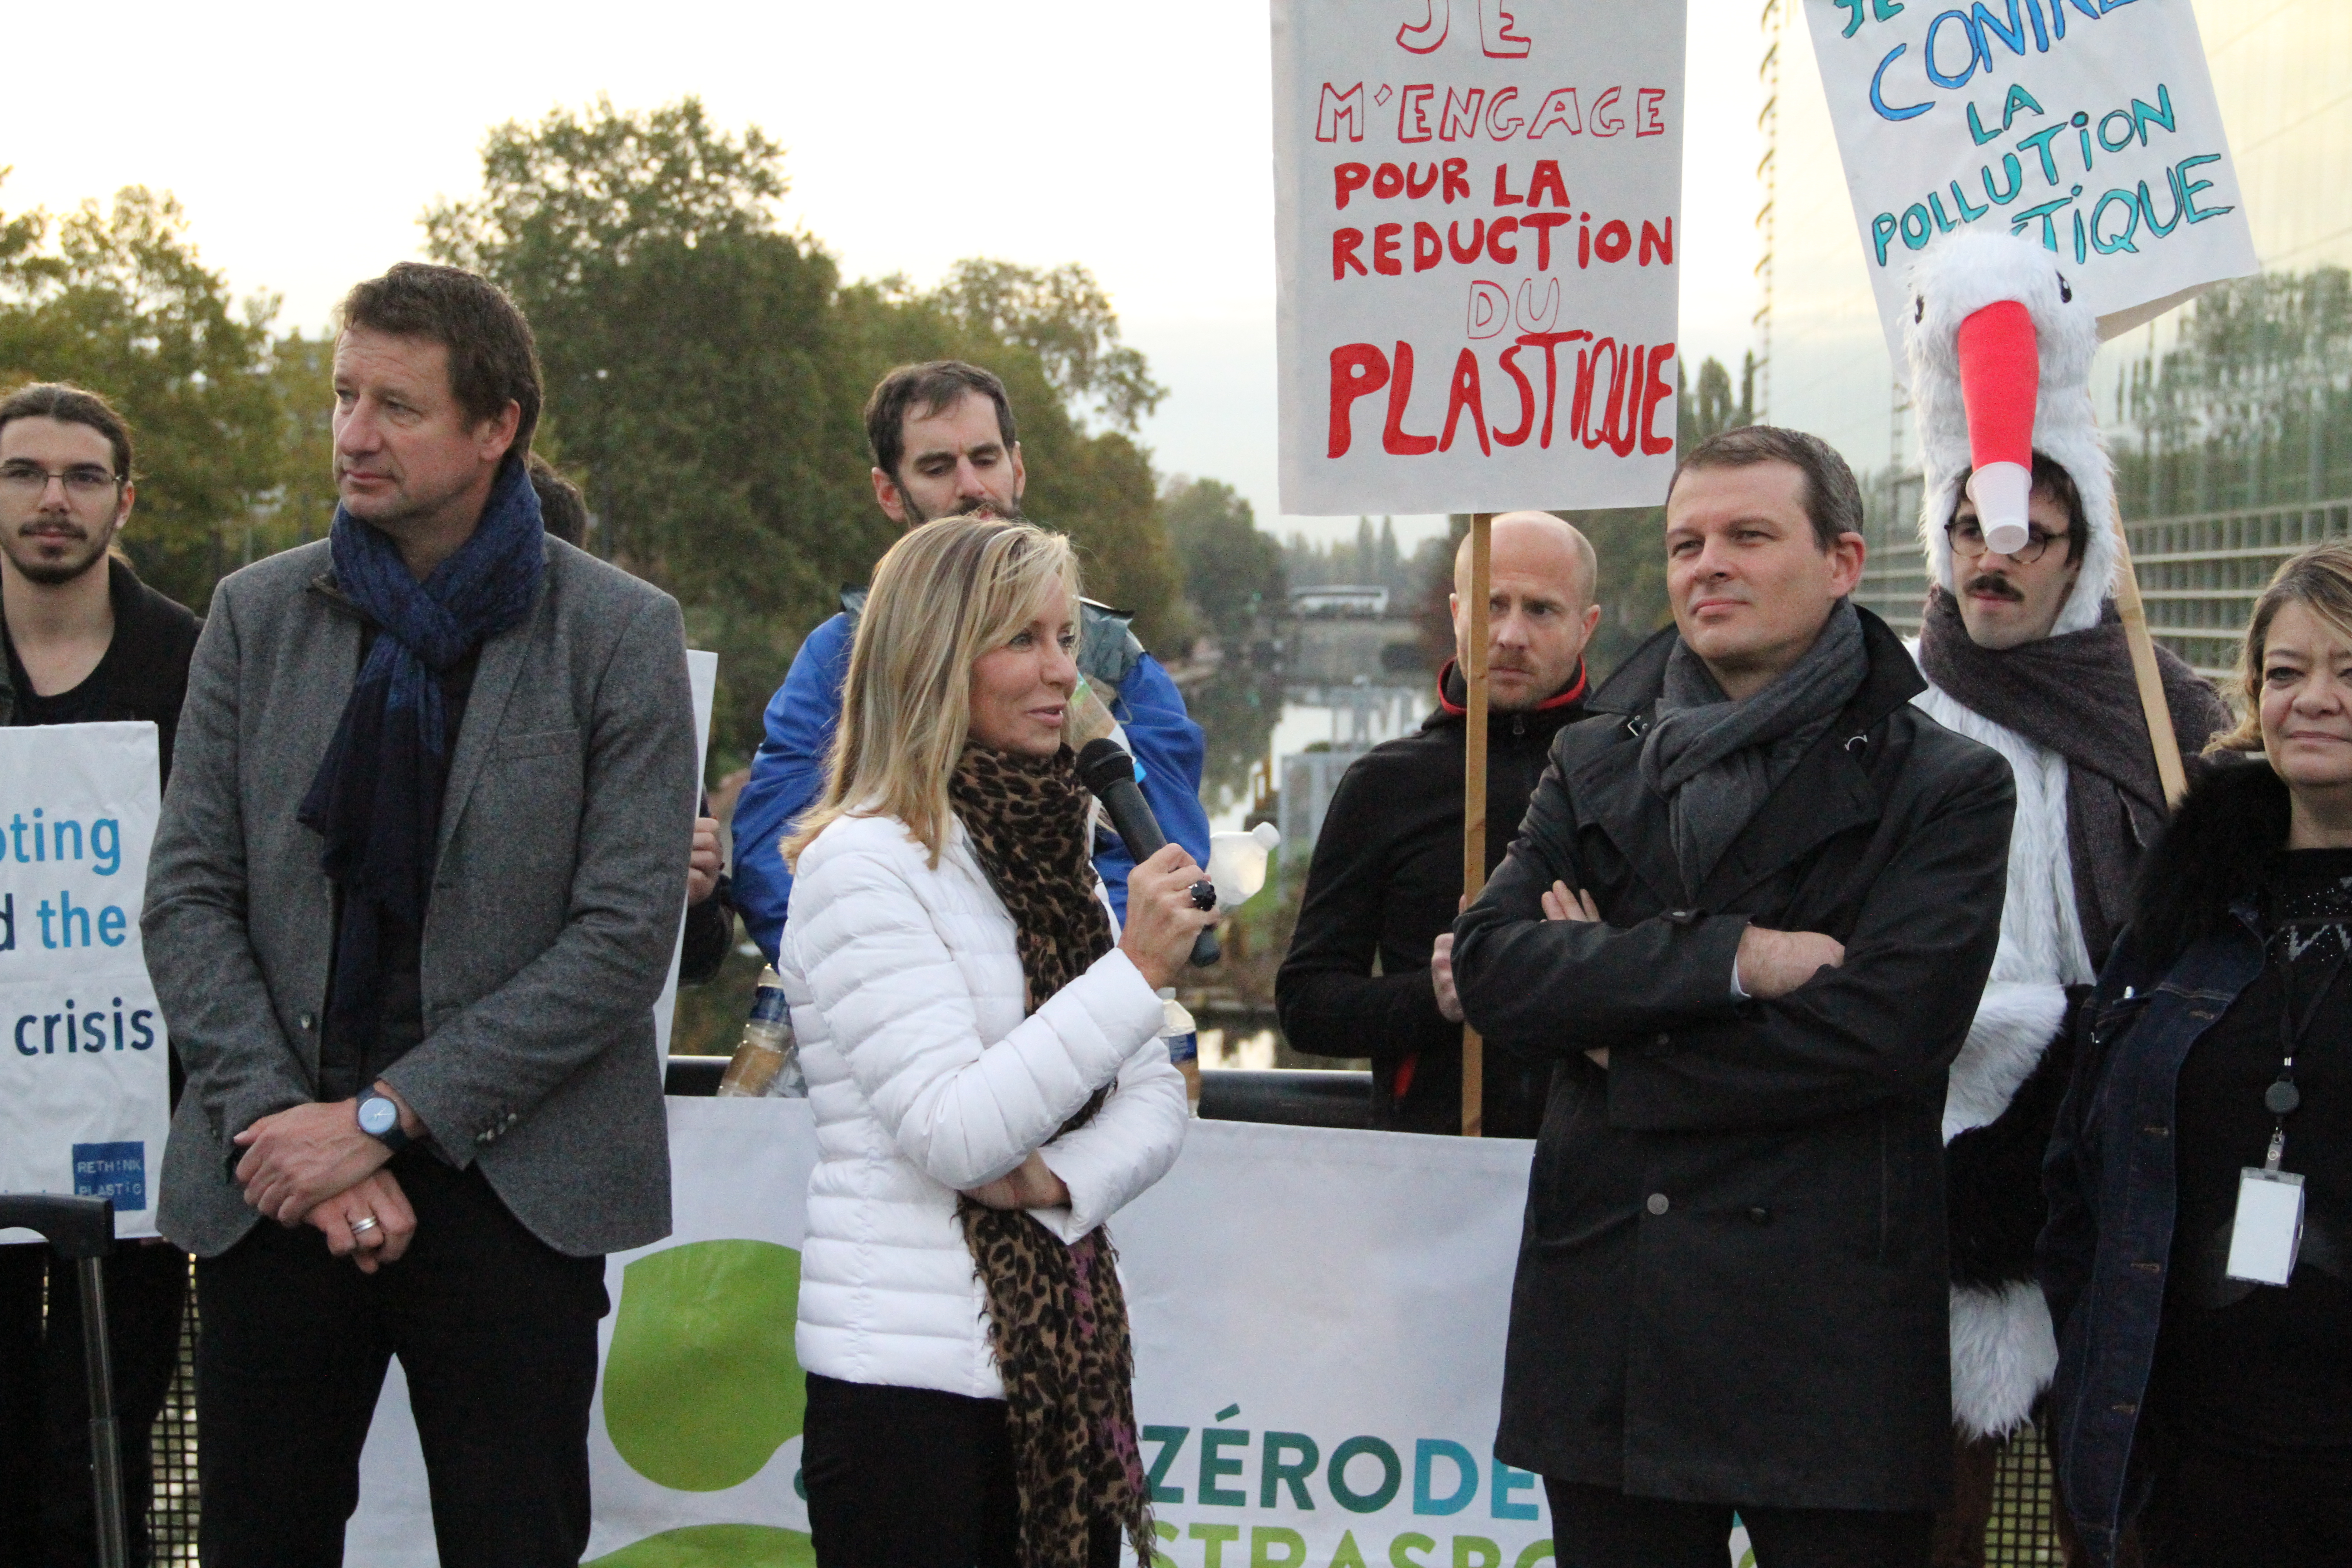 frederique-ries-mariee-femme-politique-parlement-europeen-hemicycle-strasbourg-plastiques-jetables-plastic-single use-directive-world cleanup